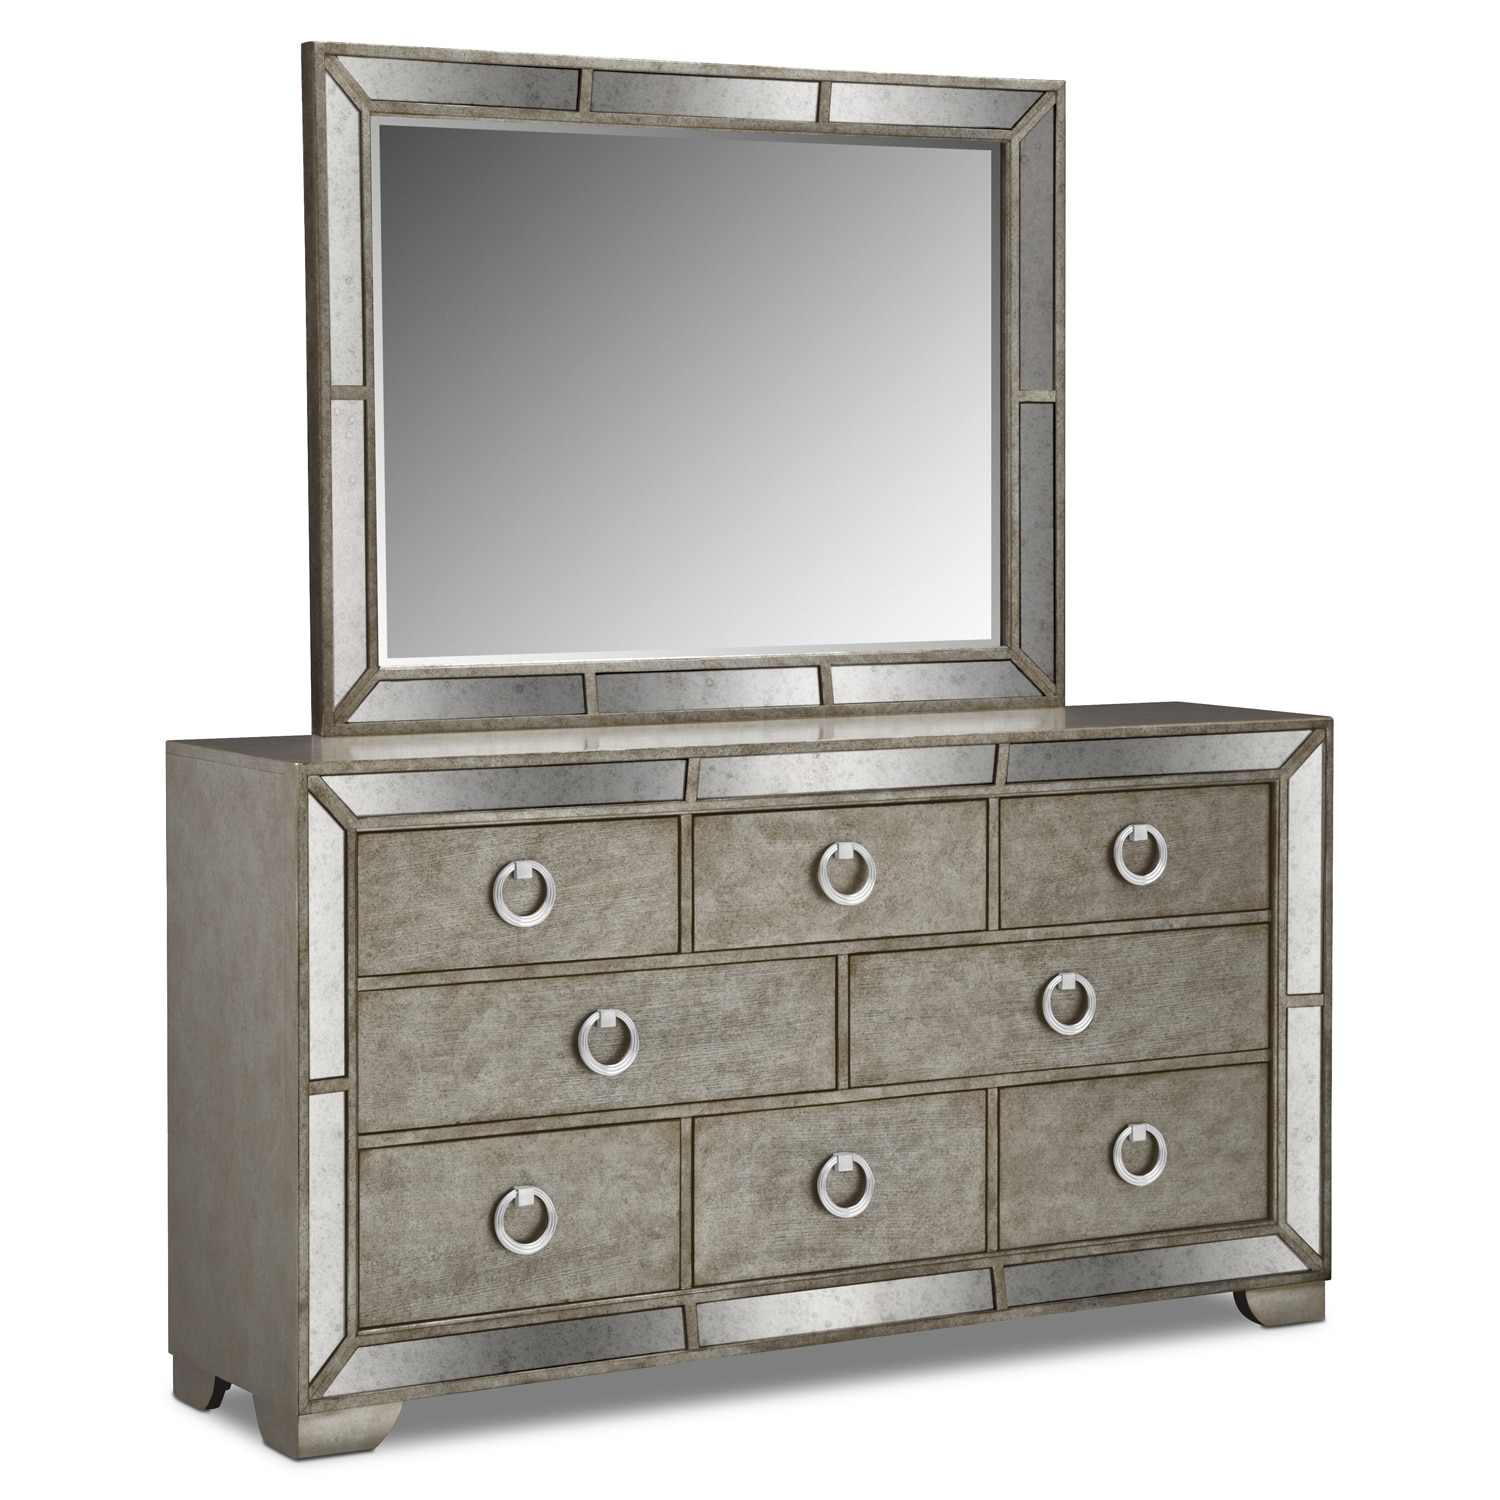 Angelina Dresser and Mirror   Metallic by Pulaski. Angelina Dresser and Mirror   Metallic   American Signature Furniture